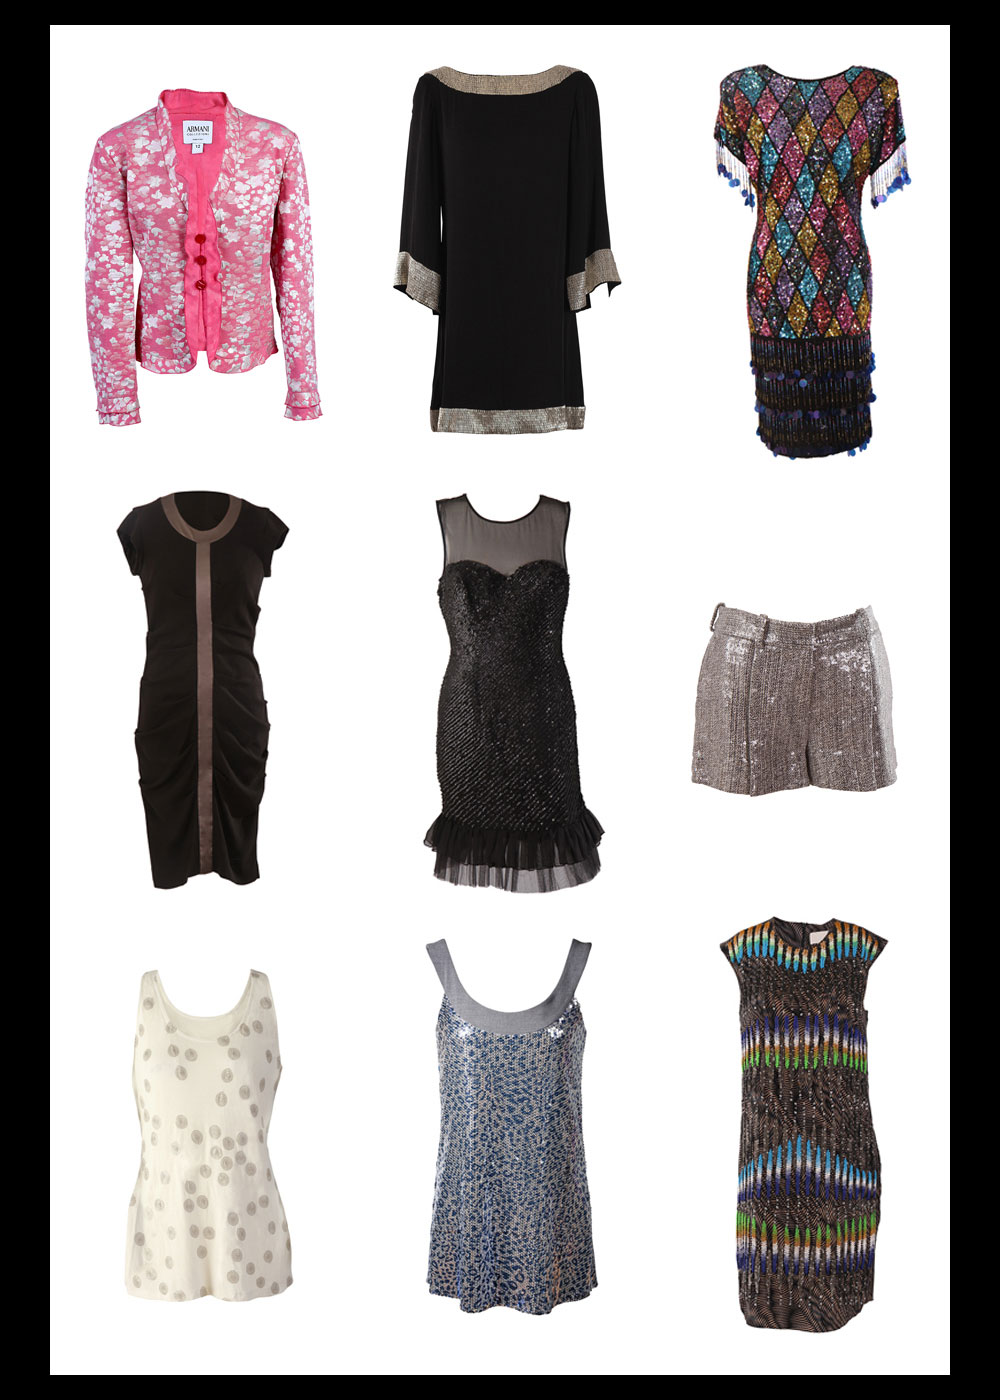 Product ECommerce Photography of Beaded and Sequin Garments